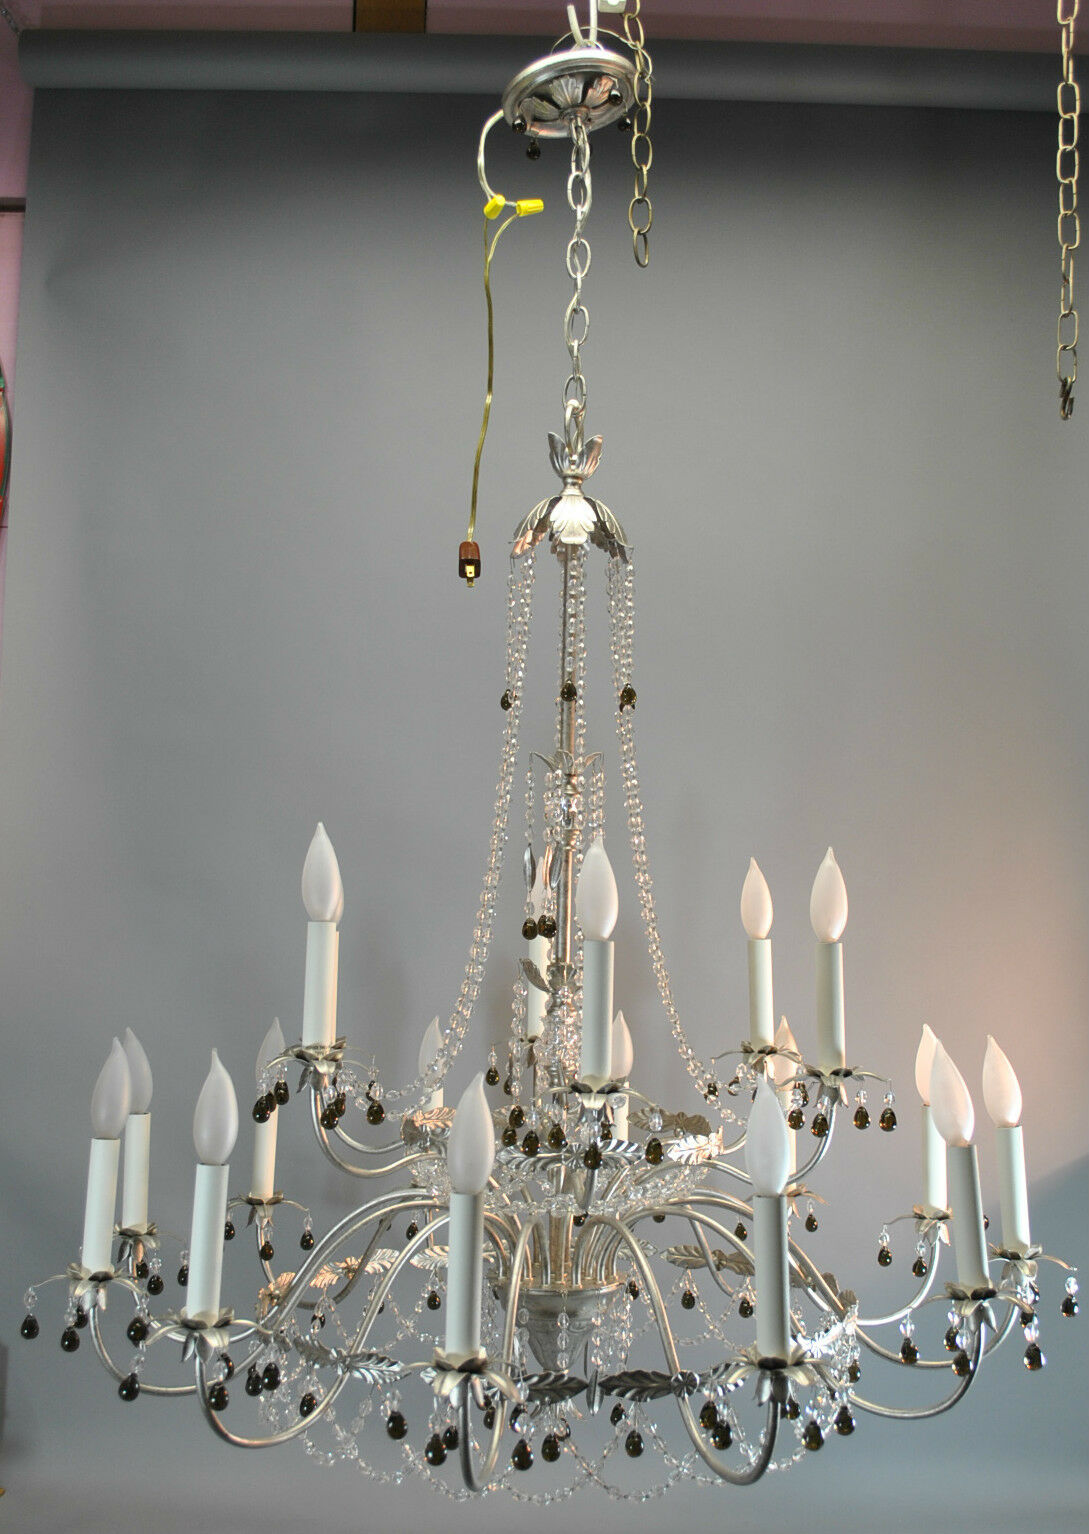 Silver and Crystal Chandelier Light Fixture with